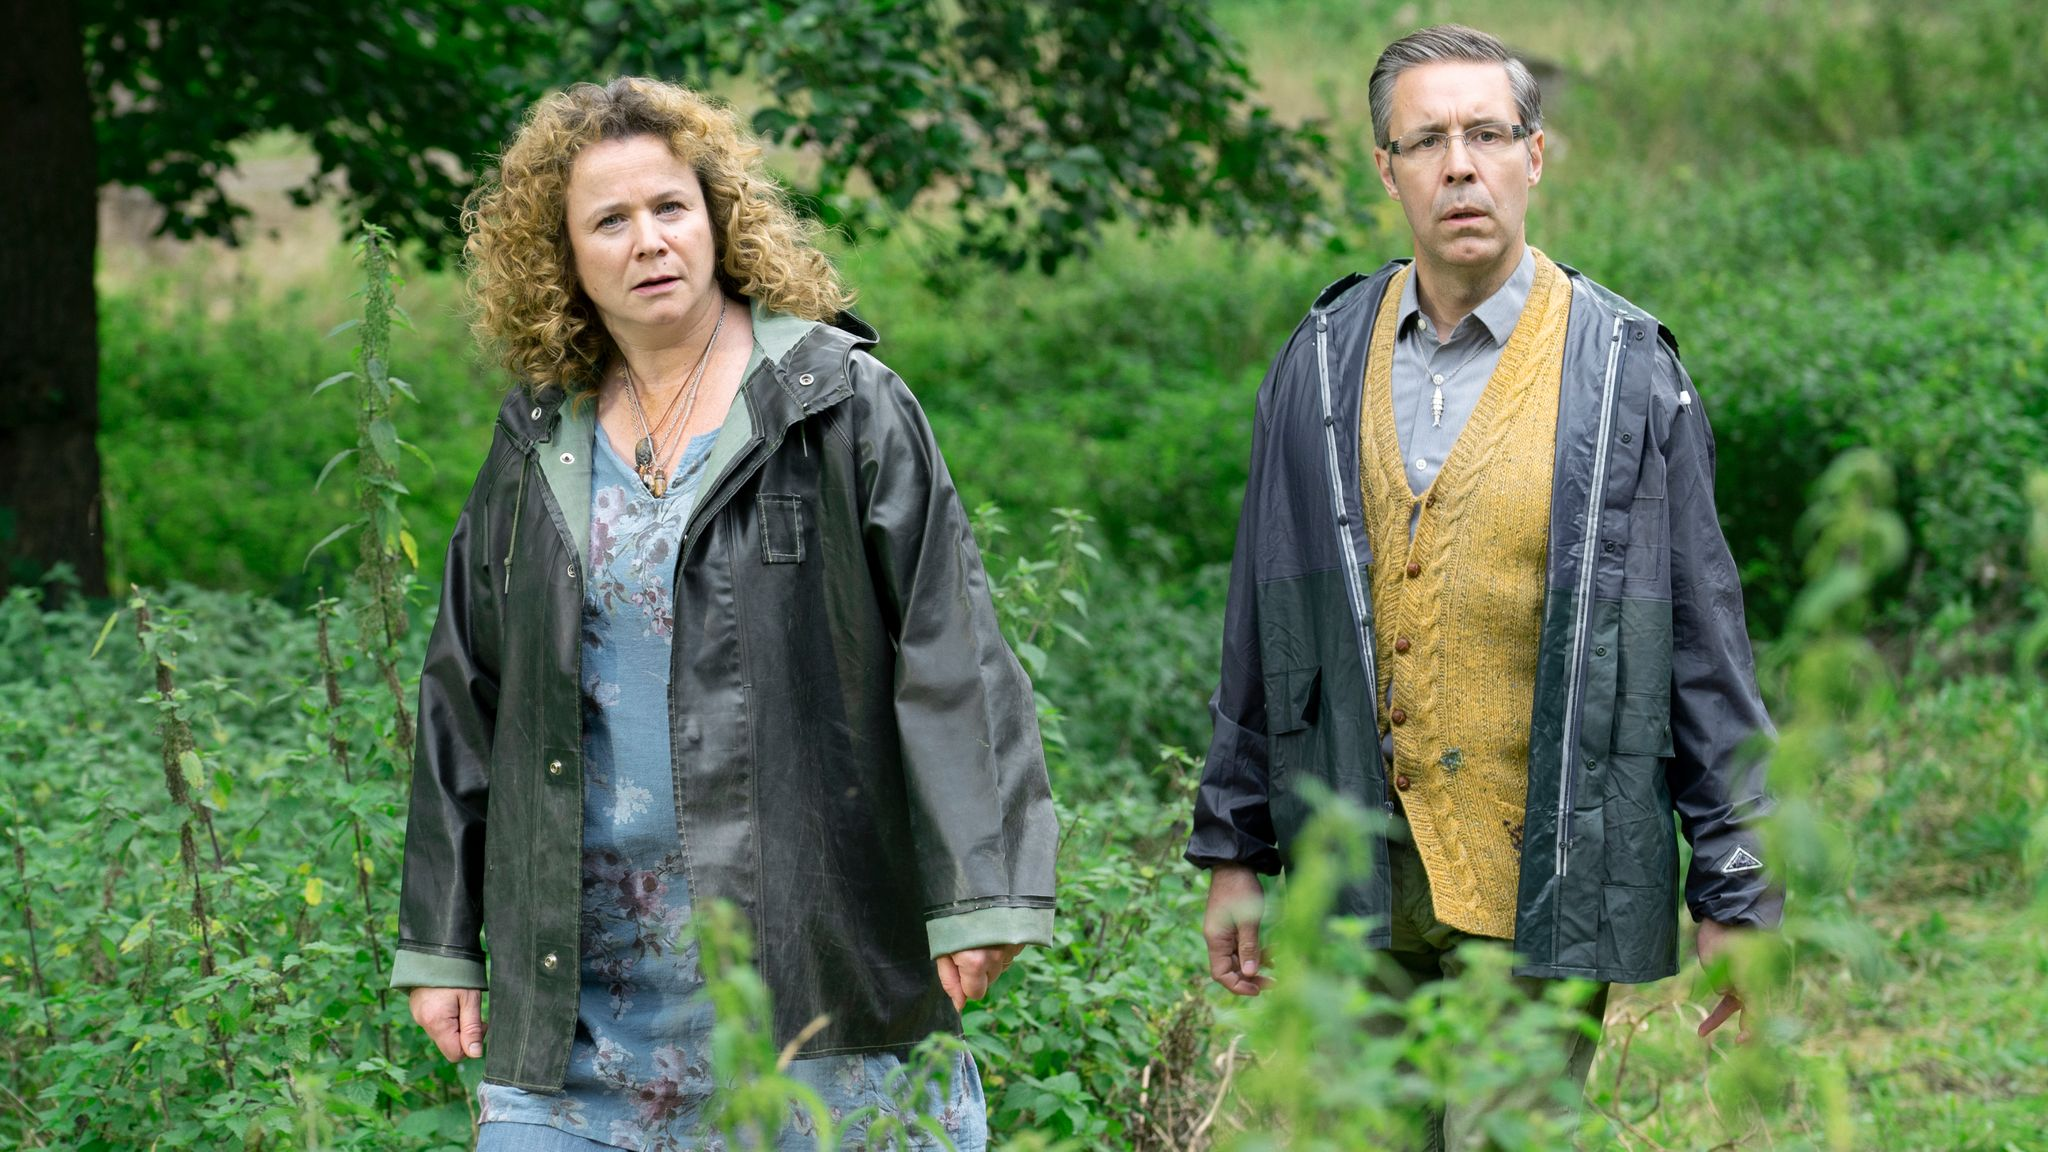 Third Day stars Jude Law, and also Emily Watson and Paddy Considine. Pic: Sky UK/ HBO